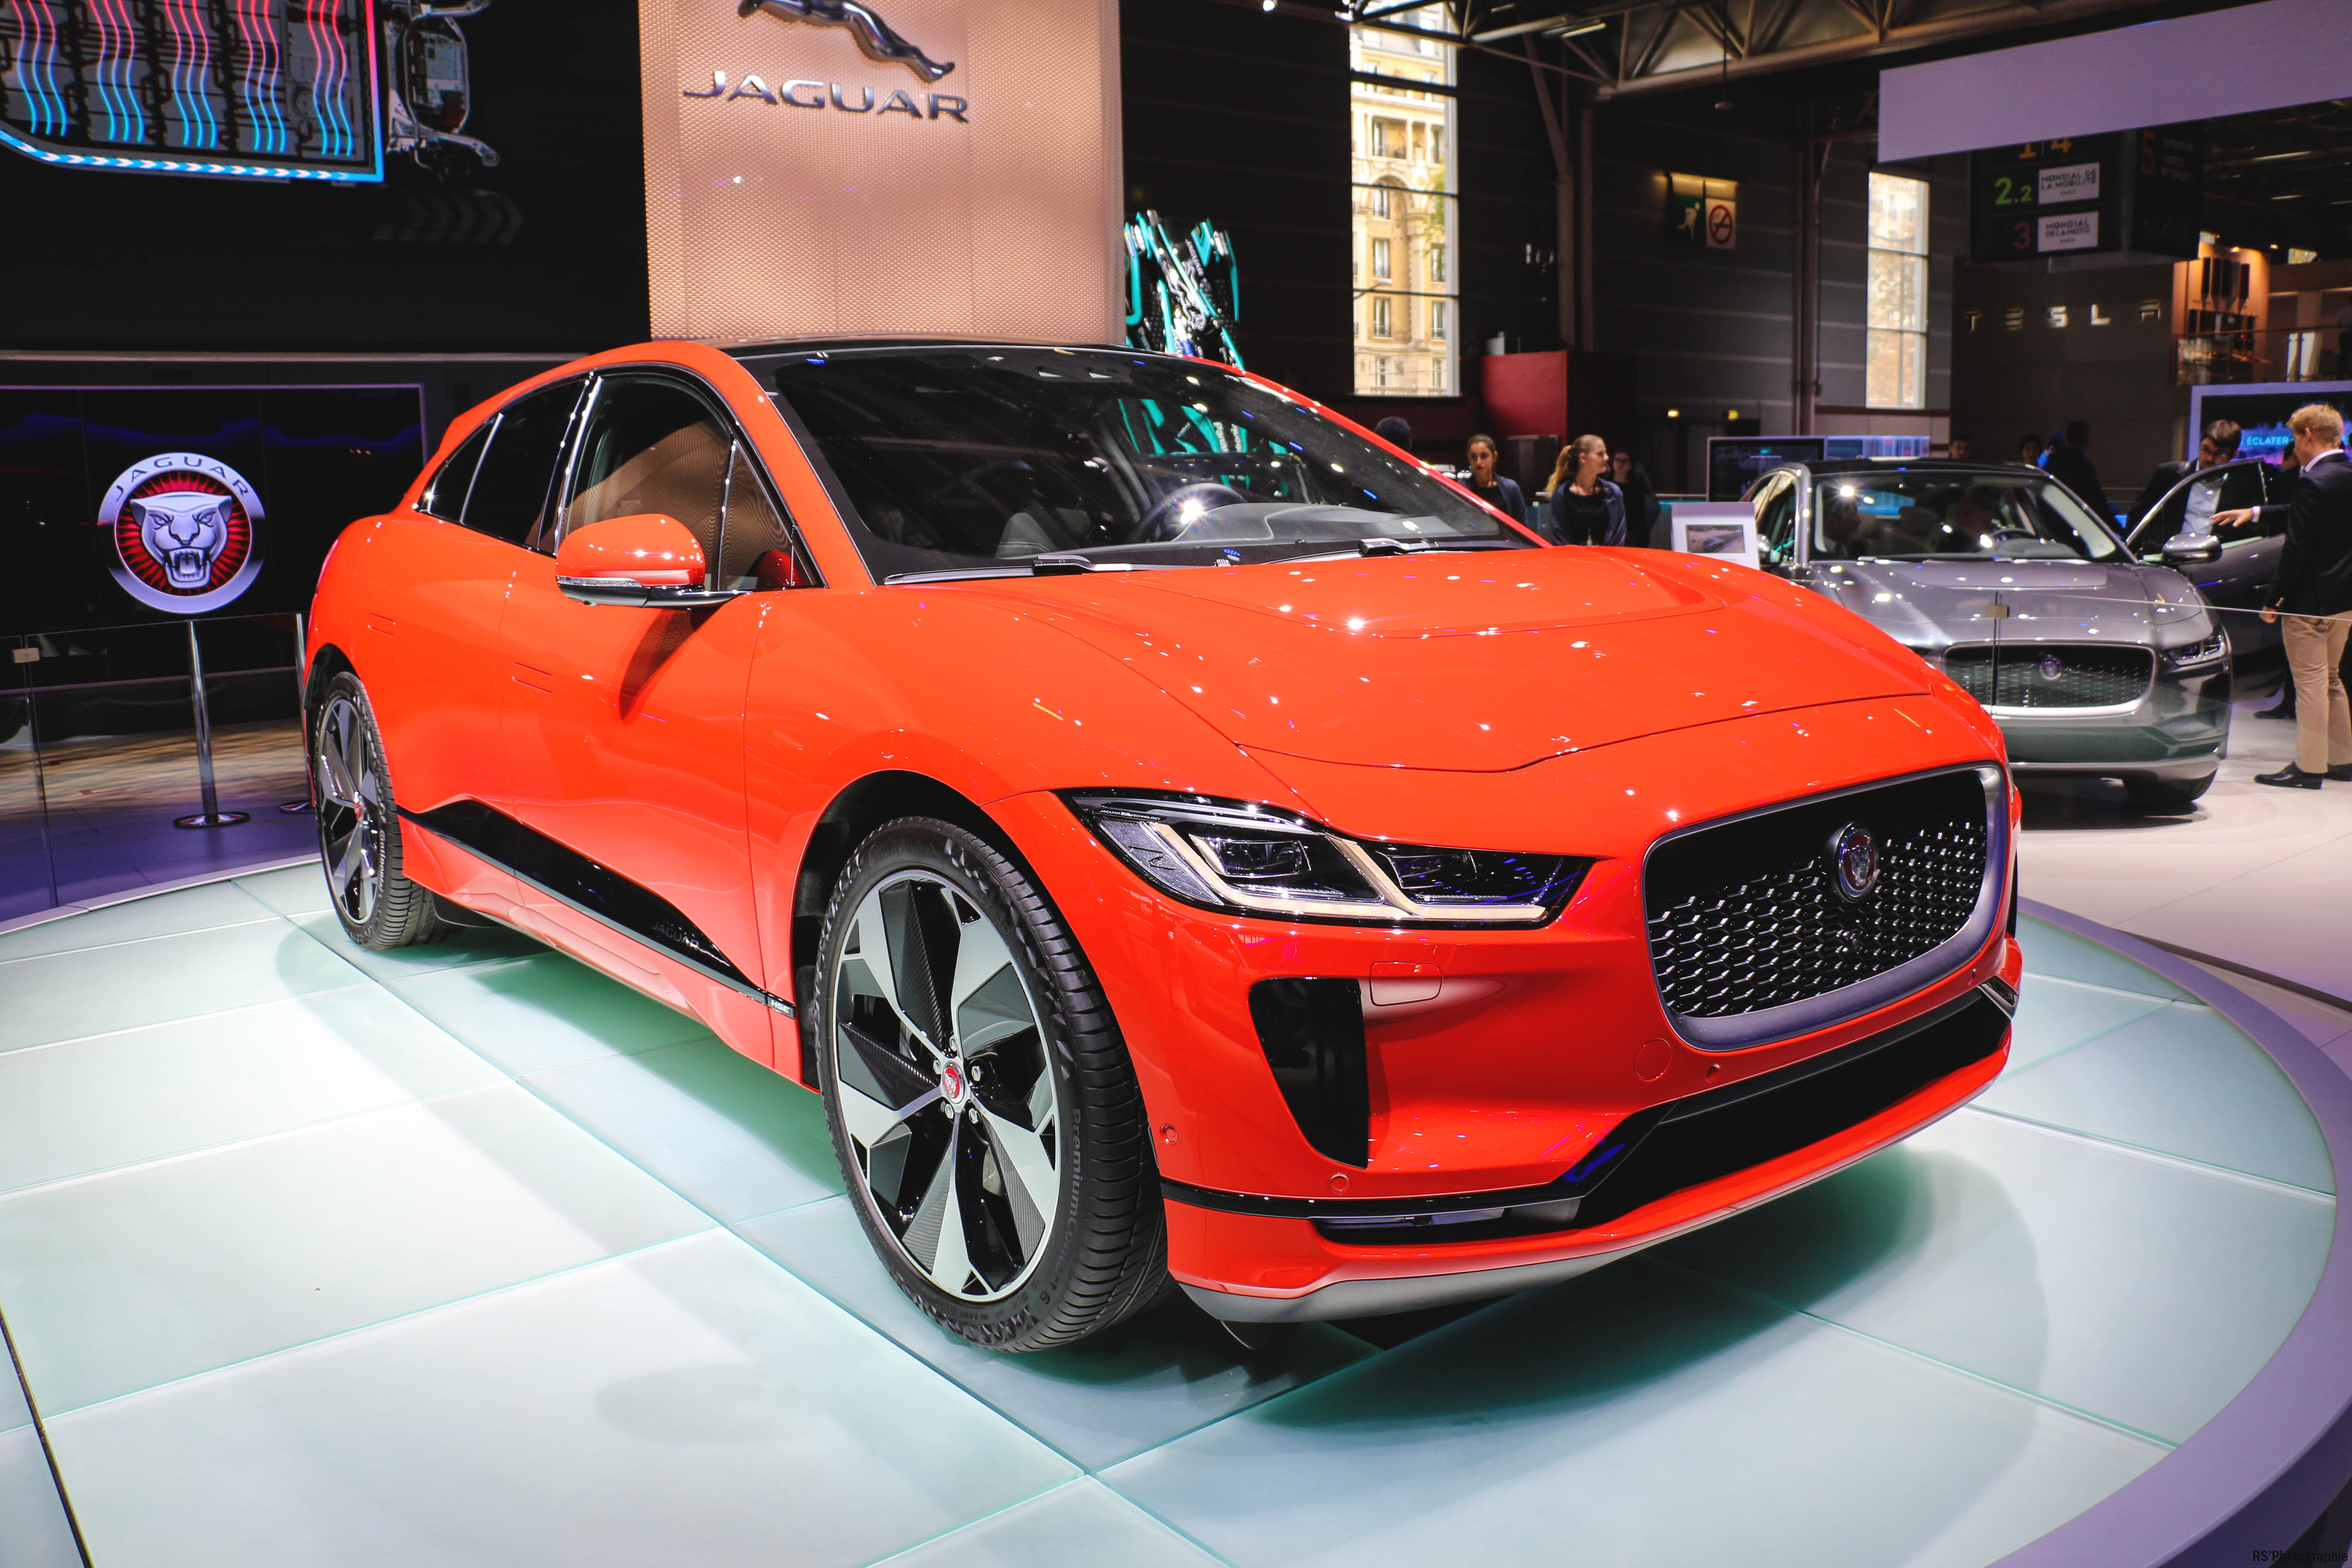 Jaguar I-PACE - Paris Motor Show - 2018 - Mondial Auto - photo by Arnaud Demasier RS Photographie